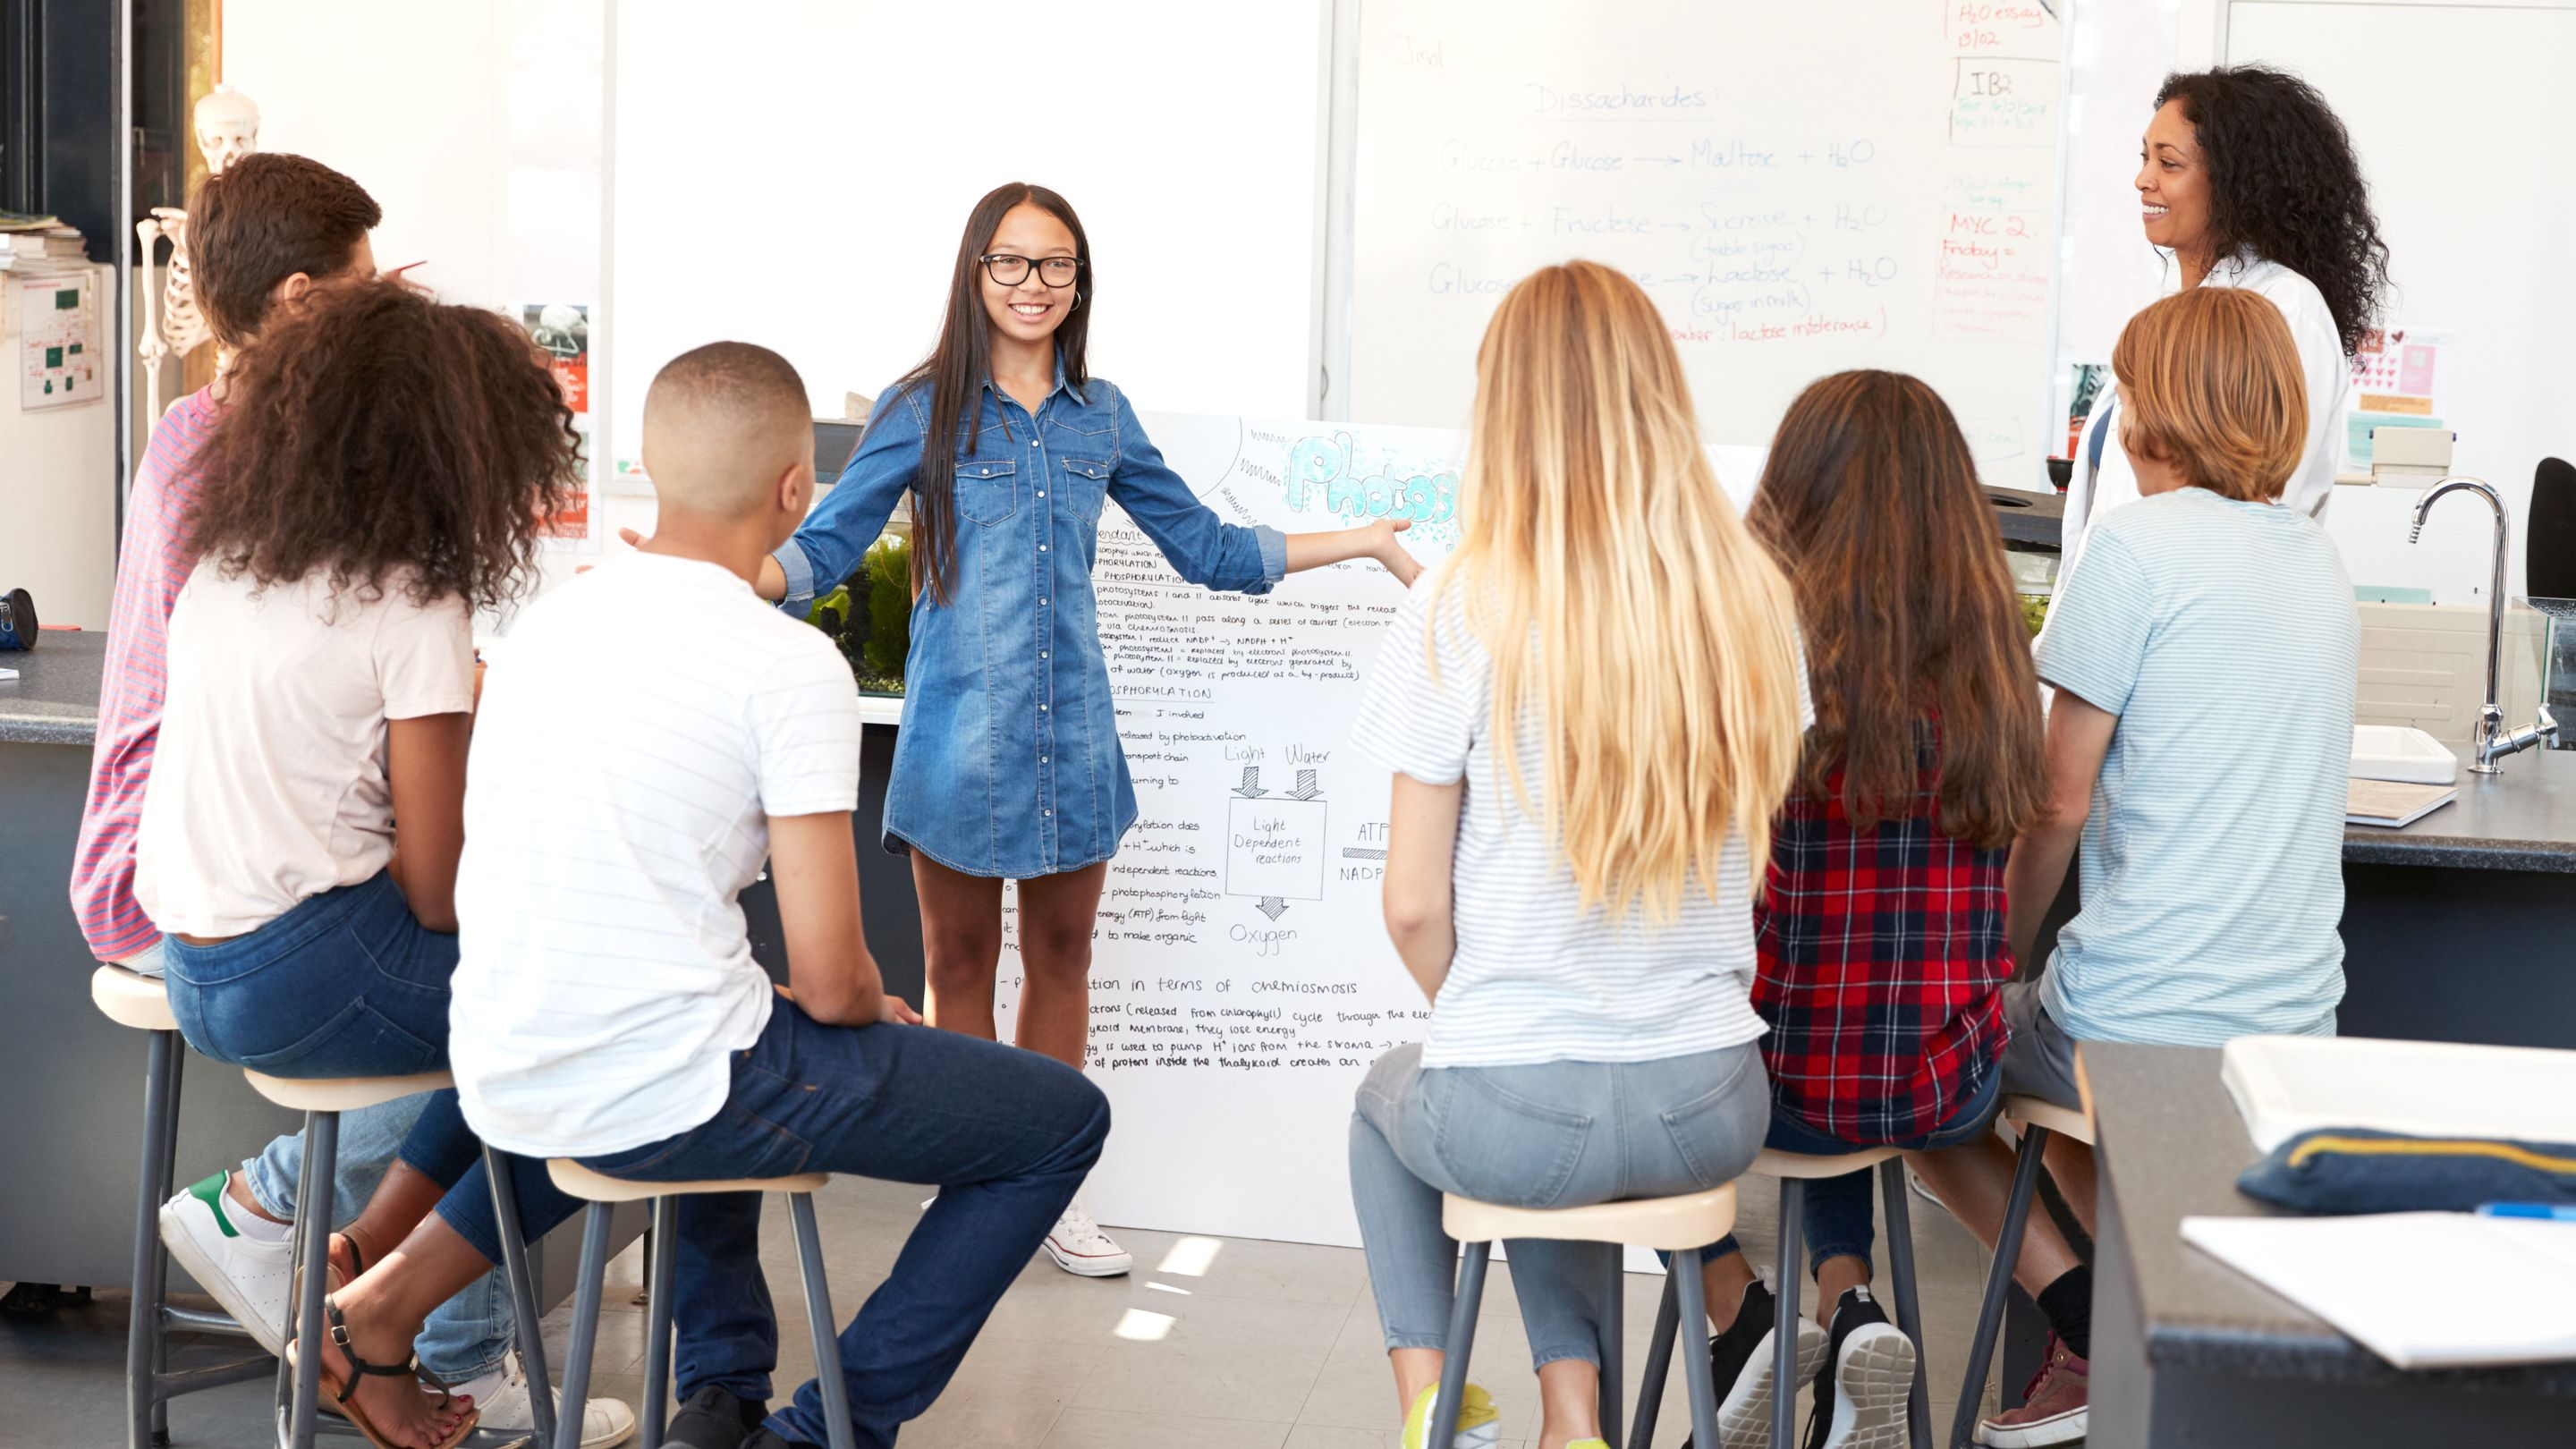 Honing Students' Speaking Skills | Edutopia